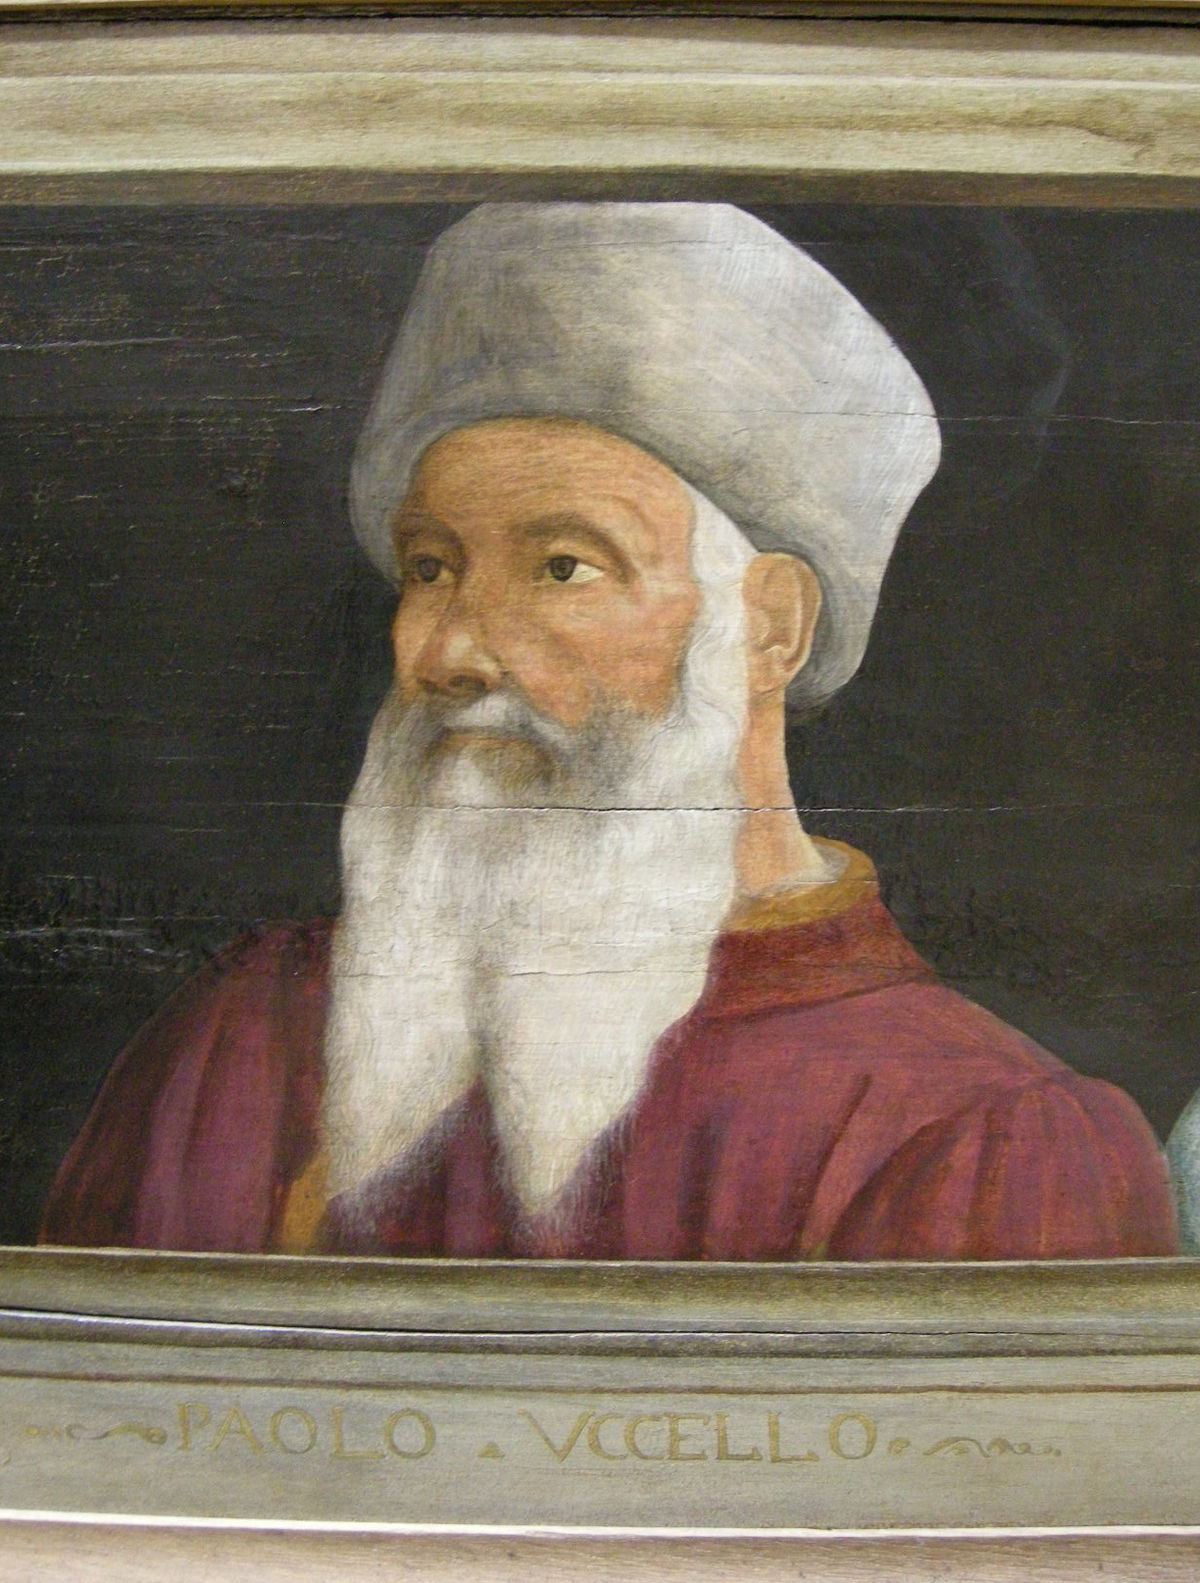 PAOLO UCCELLO PORTRAIT - POVENANCE-DEBATED